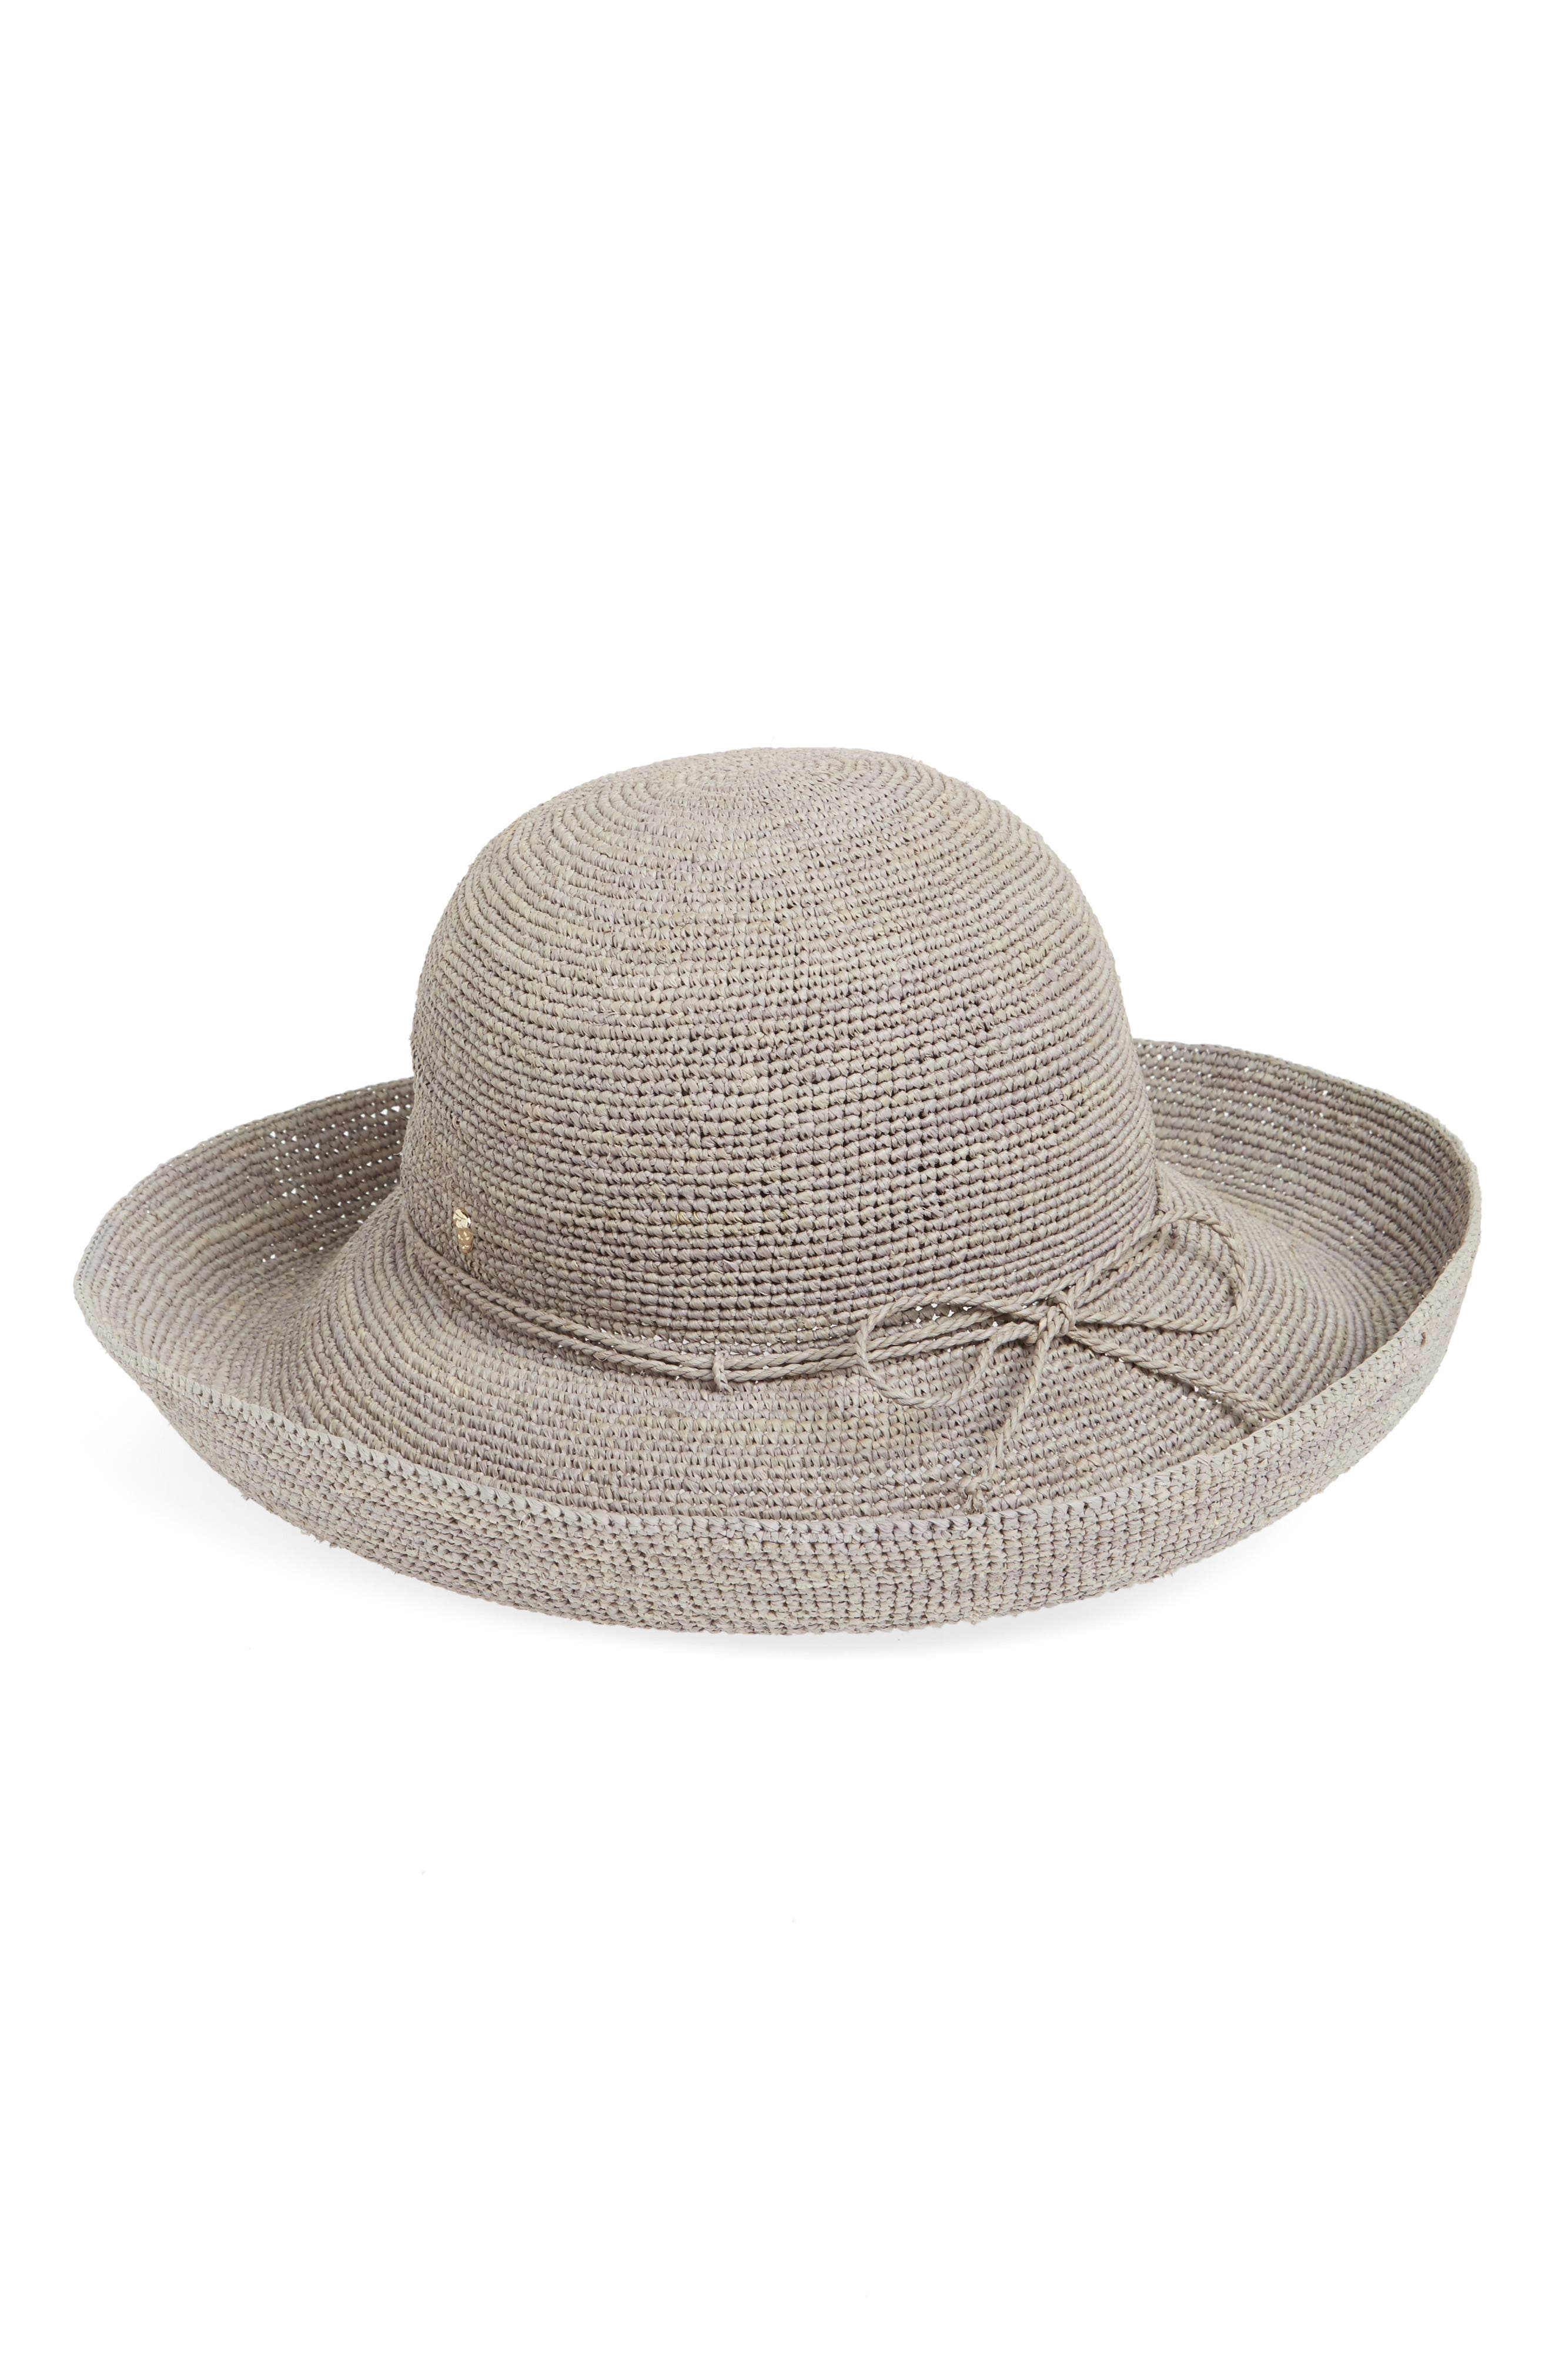 'Provence 12' Packable Raffia Hat,                         Main,                         color, 025